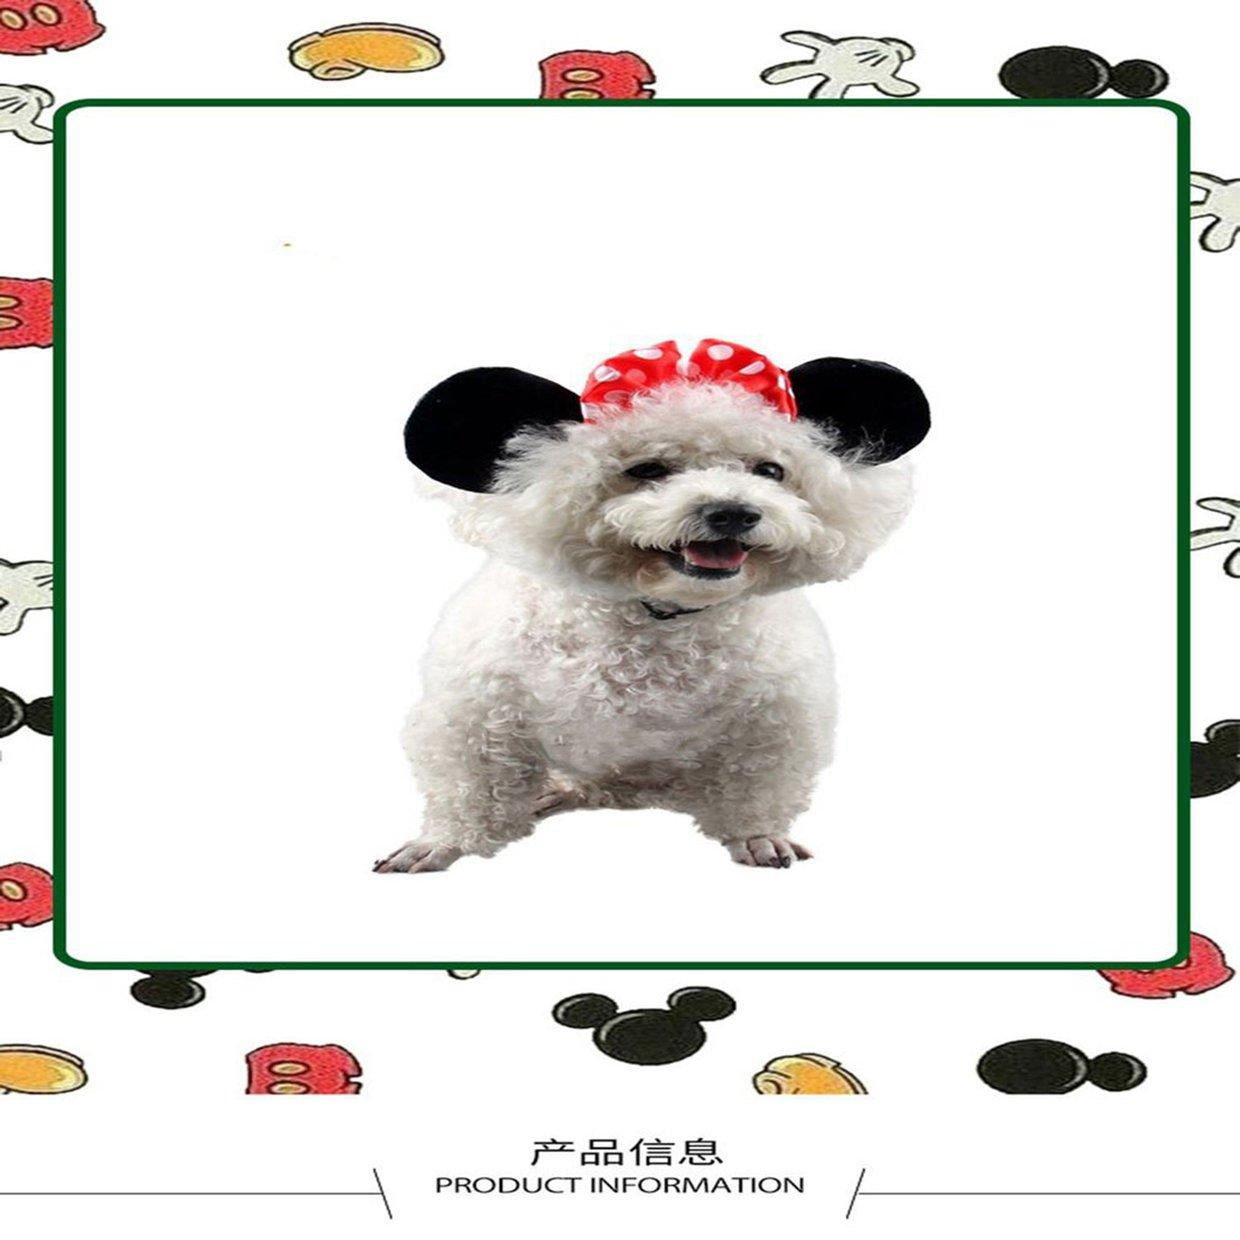 Ablaze Zal Cute Pet Birthday Supplies Dog Cat Accessories Cartoon Headband Mickey Mouse Shape Headband Hair Band Pet Supplies